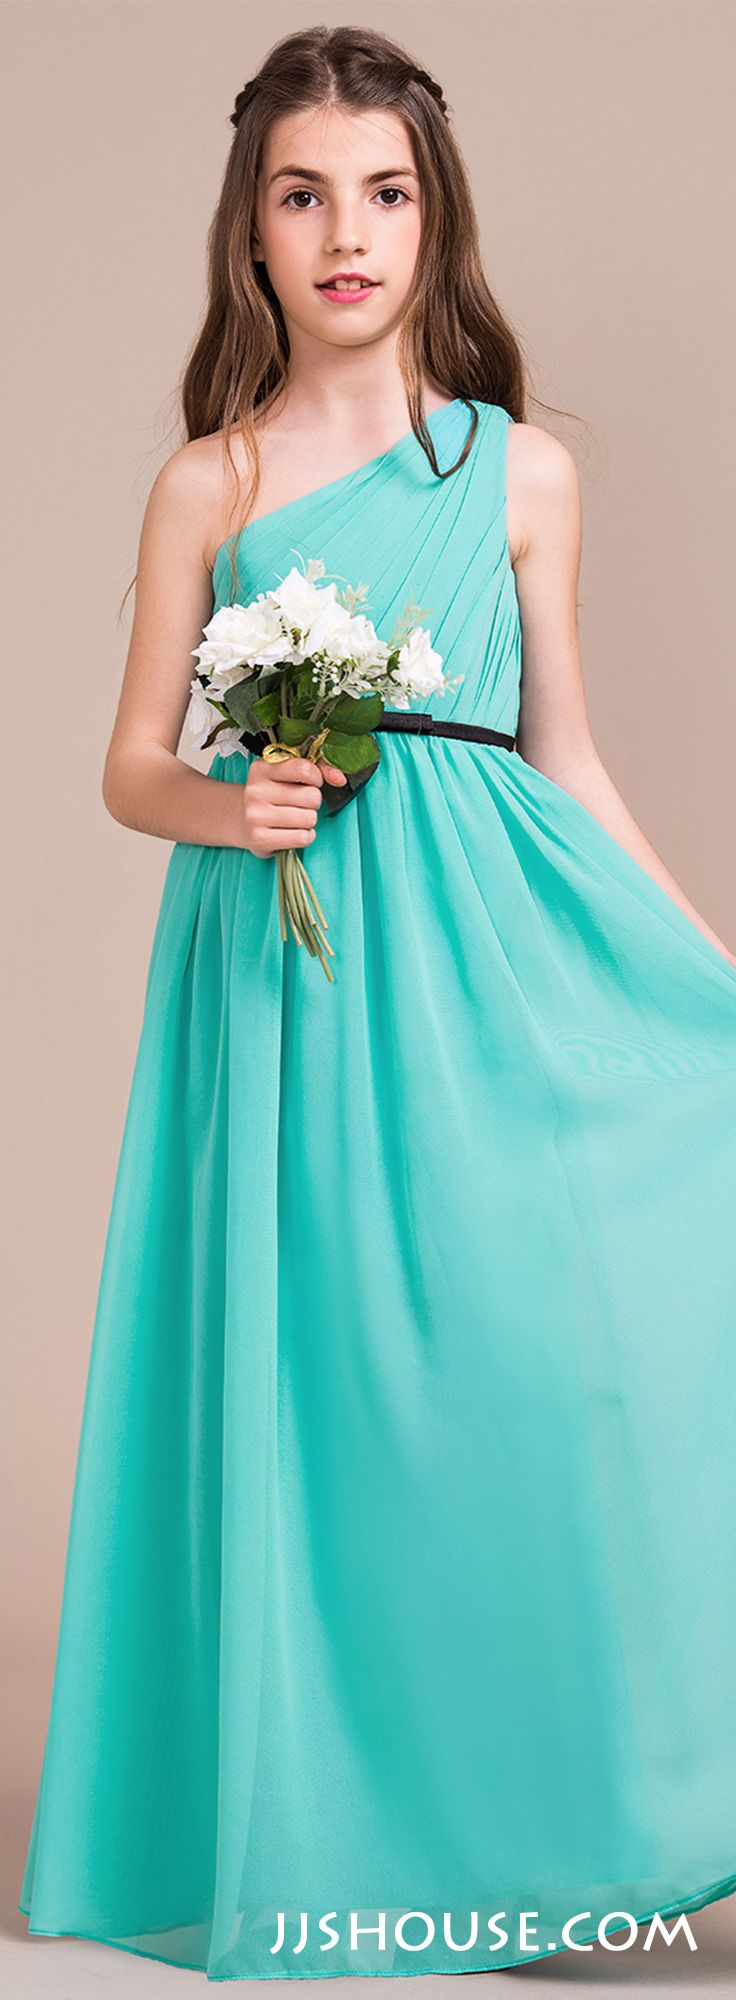 Make a statement in this refreshing color. #jjshouse | Junior ...